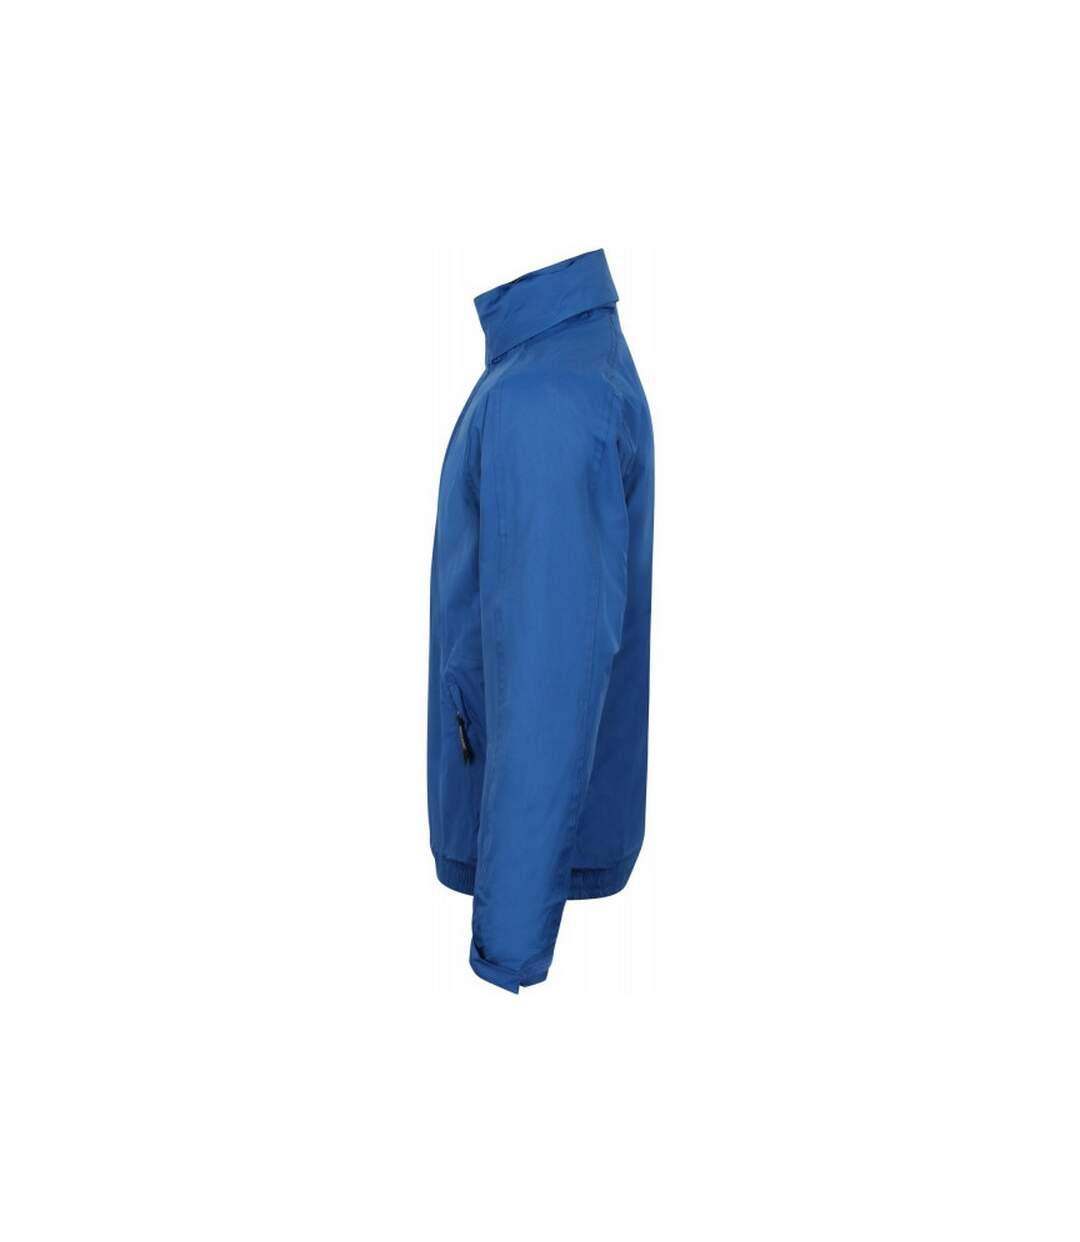 Regatta Dover Waterproof Windproof Jacket (Thermo-Guard Insulation) (Royal Blue) - UTRG1425